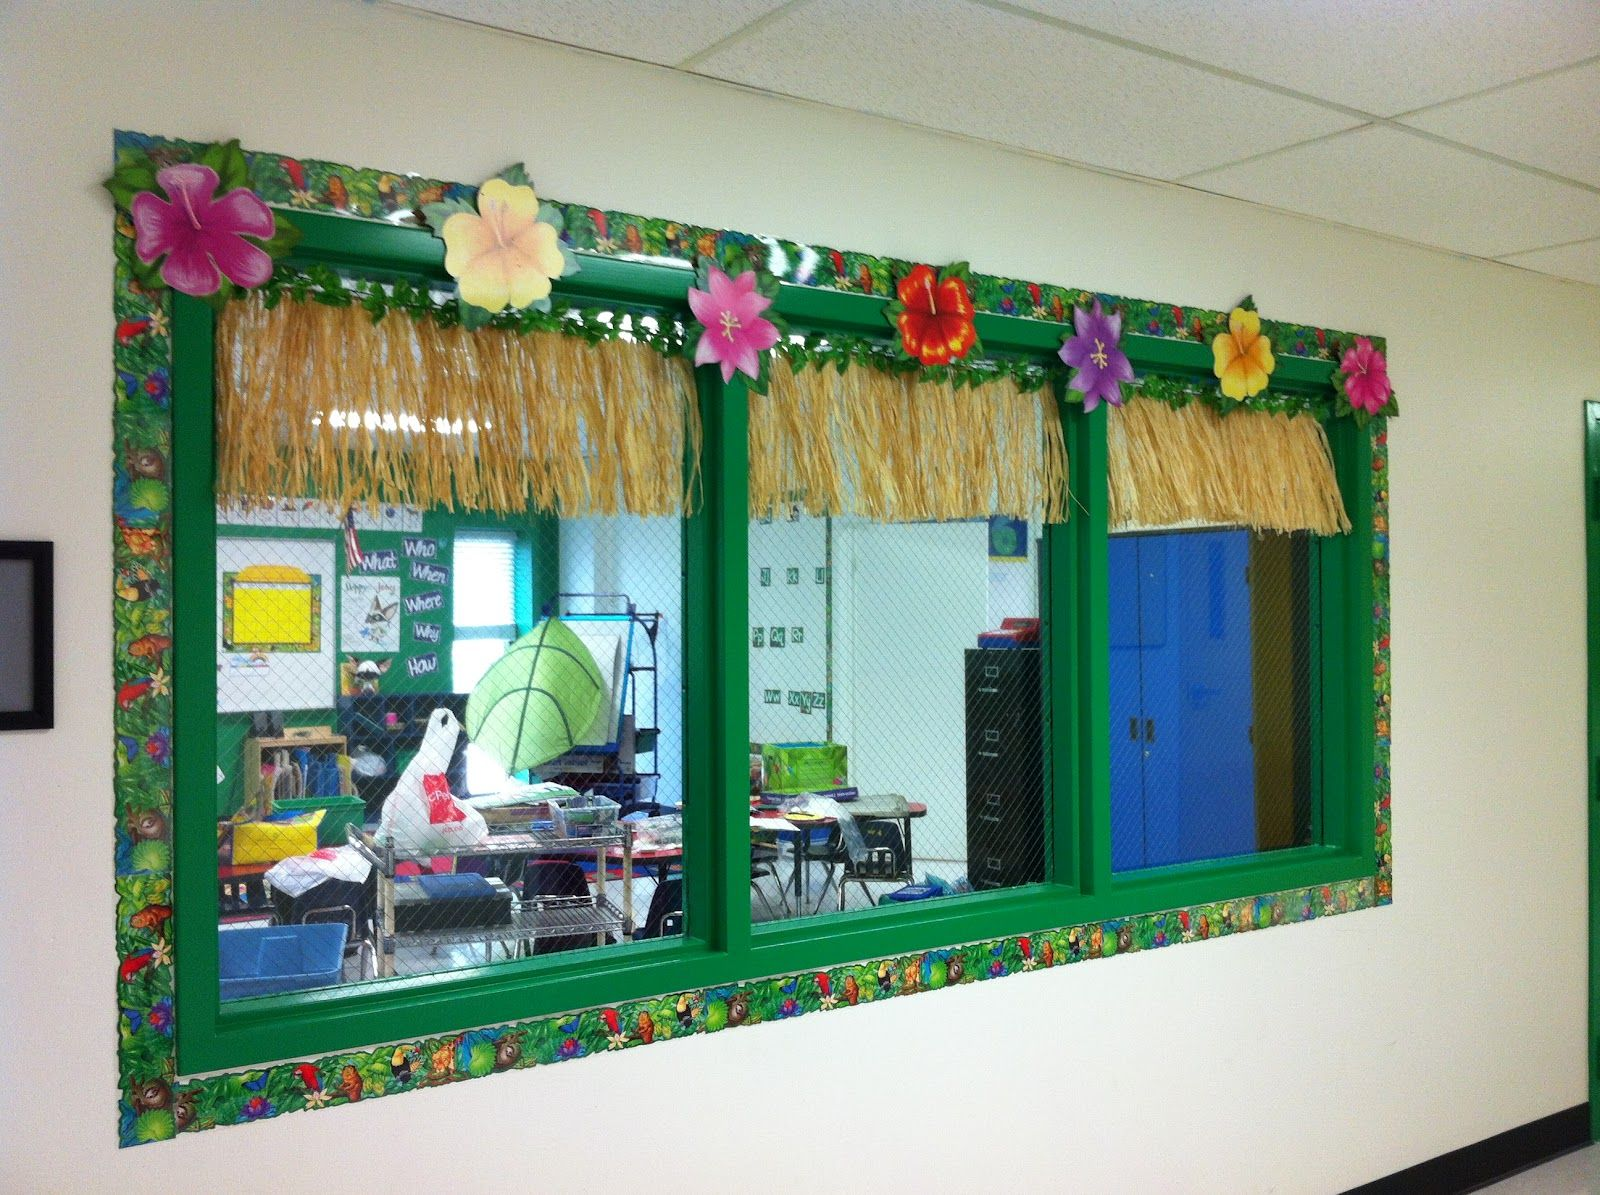 Decorated Hallway Window Looking Into The Classroom